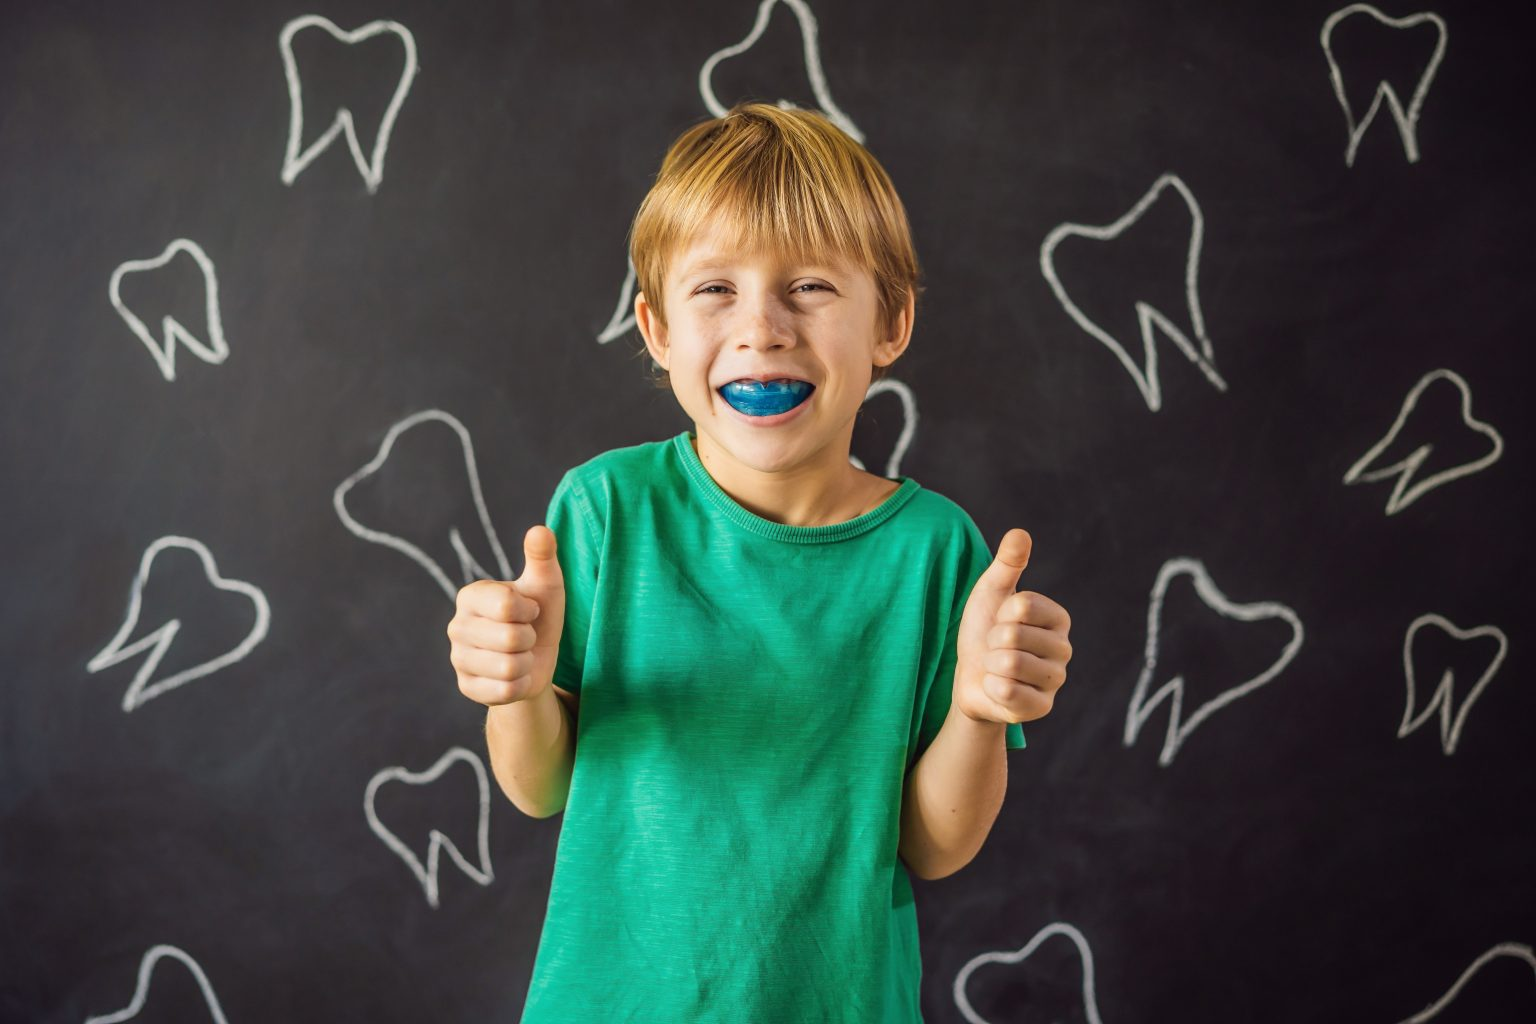 six year old boy shows myofunctional trainer. helps equalize the growing teeth and correct bite, develop mouth breathing habit. corrects the position of the tongue